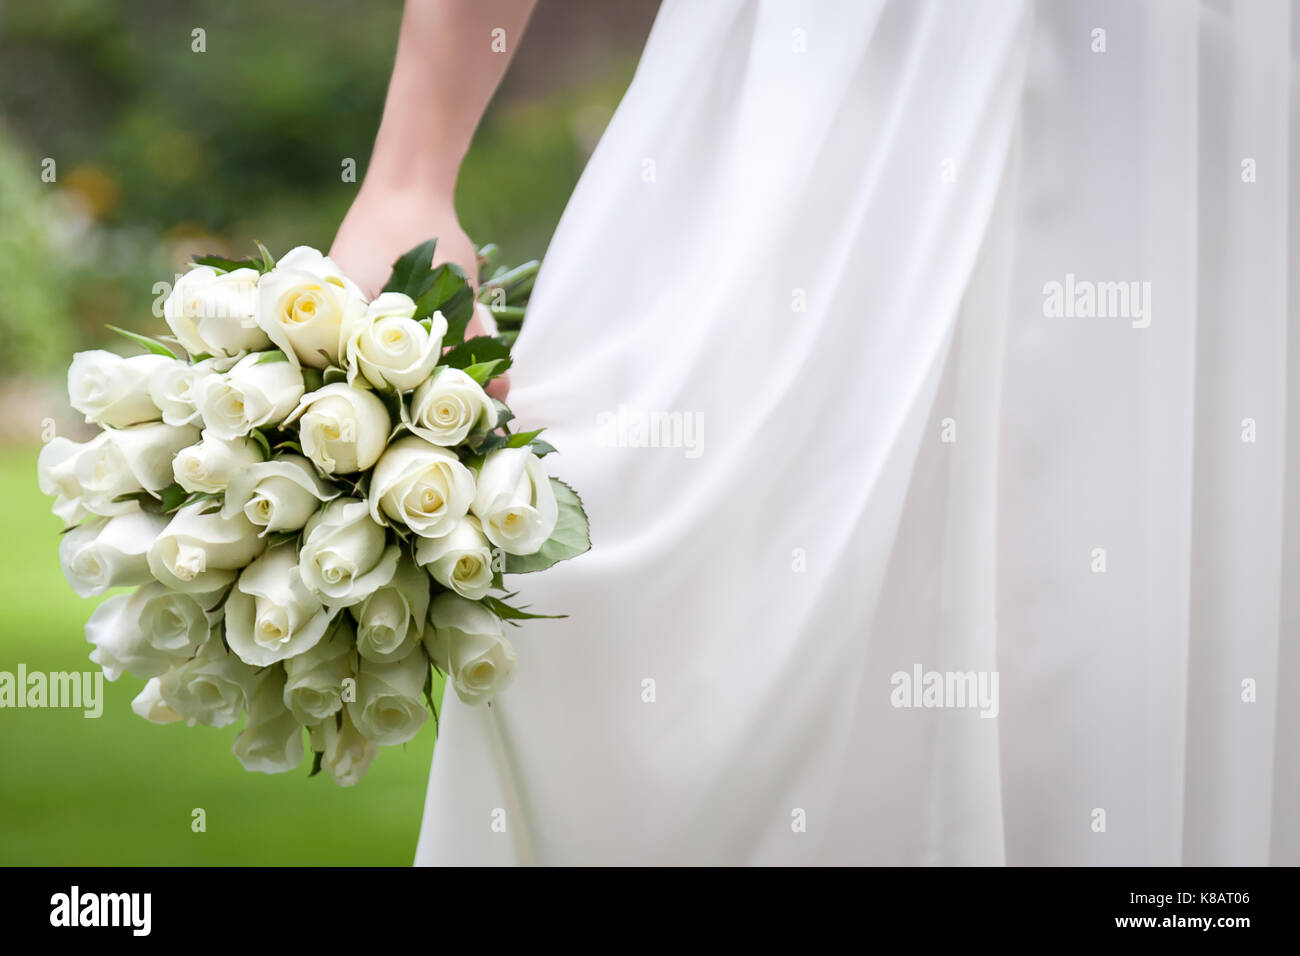 A wedding bride's bouquet of white/yellow rose flowers with wedding dress. - Stock Image